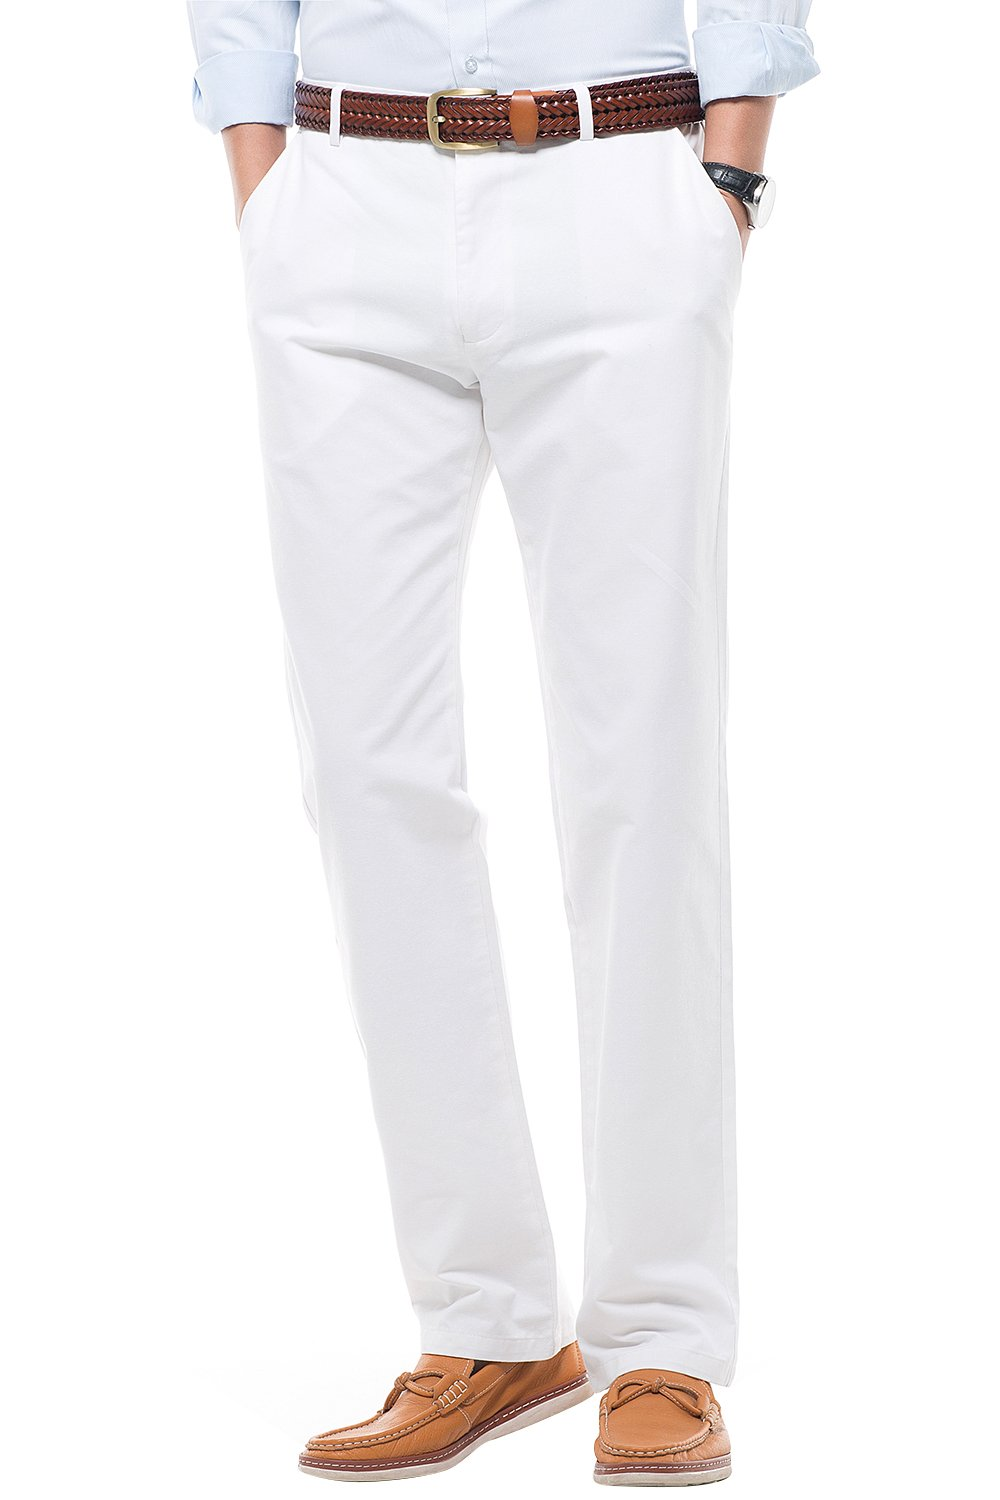 INFLATION Men's Stretchy Straight Fit Casual Pants,100% Cotton Flat Front Formal Trousers Dress Pants